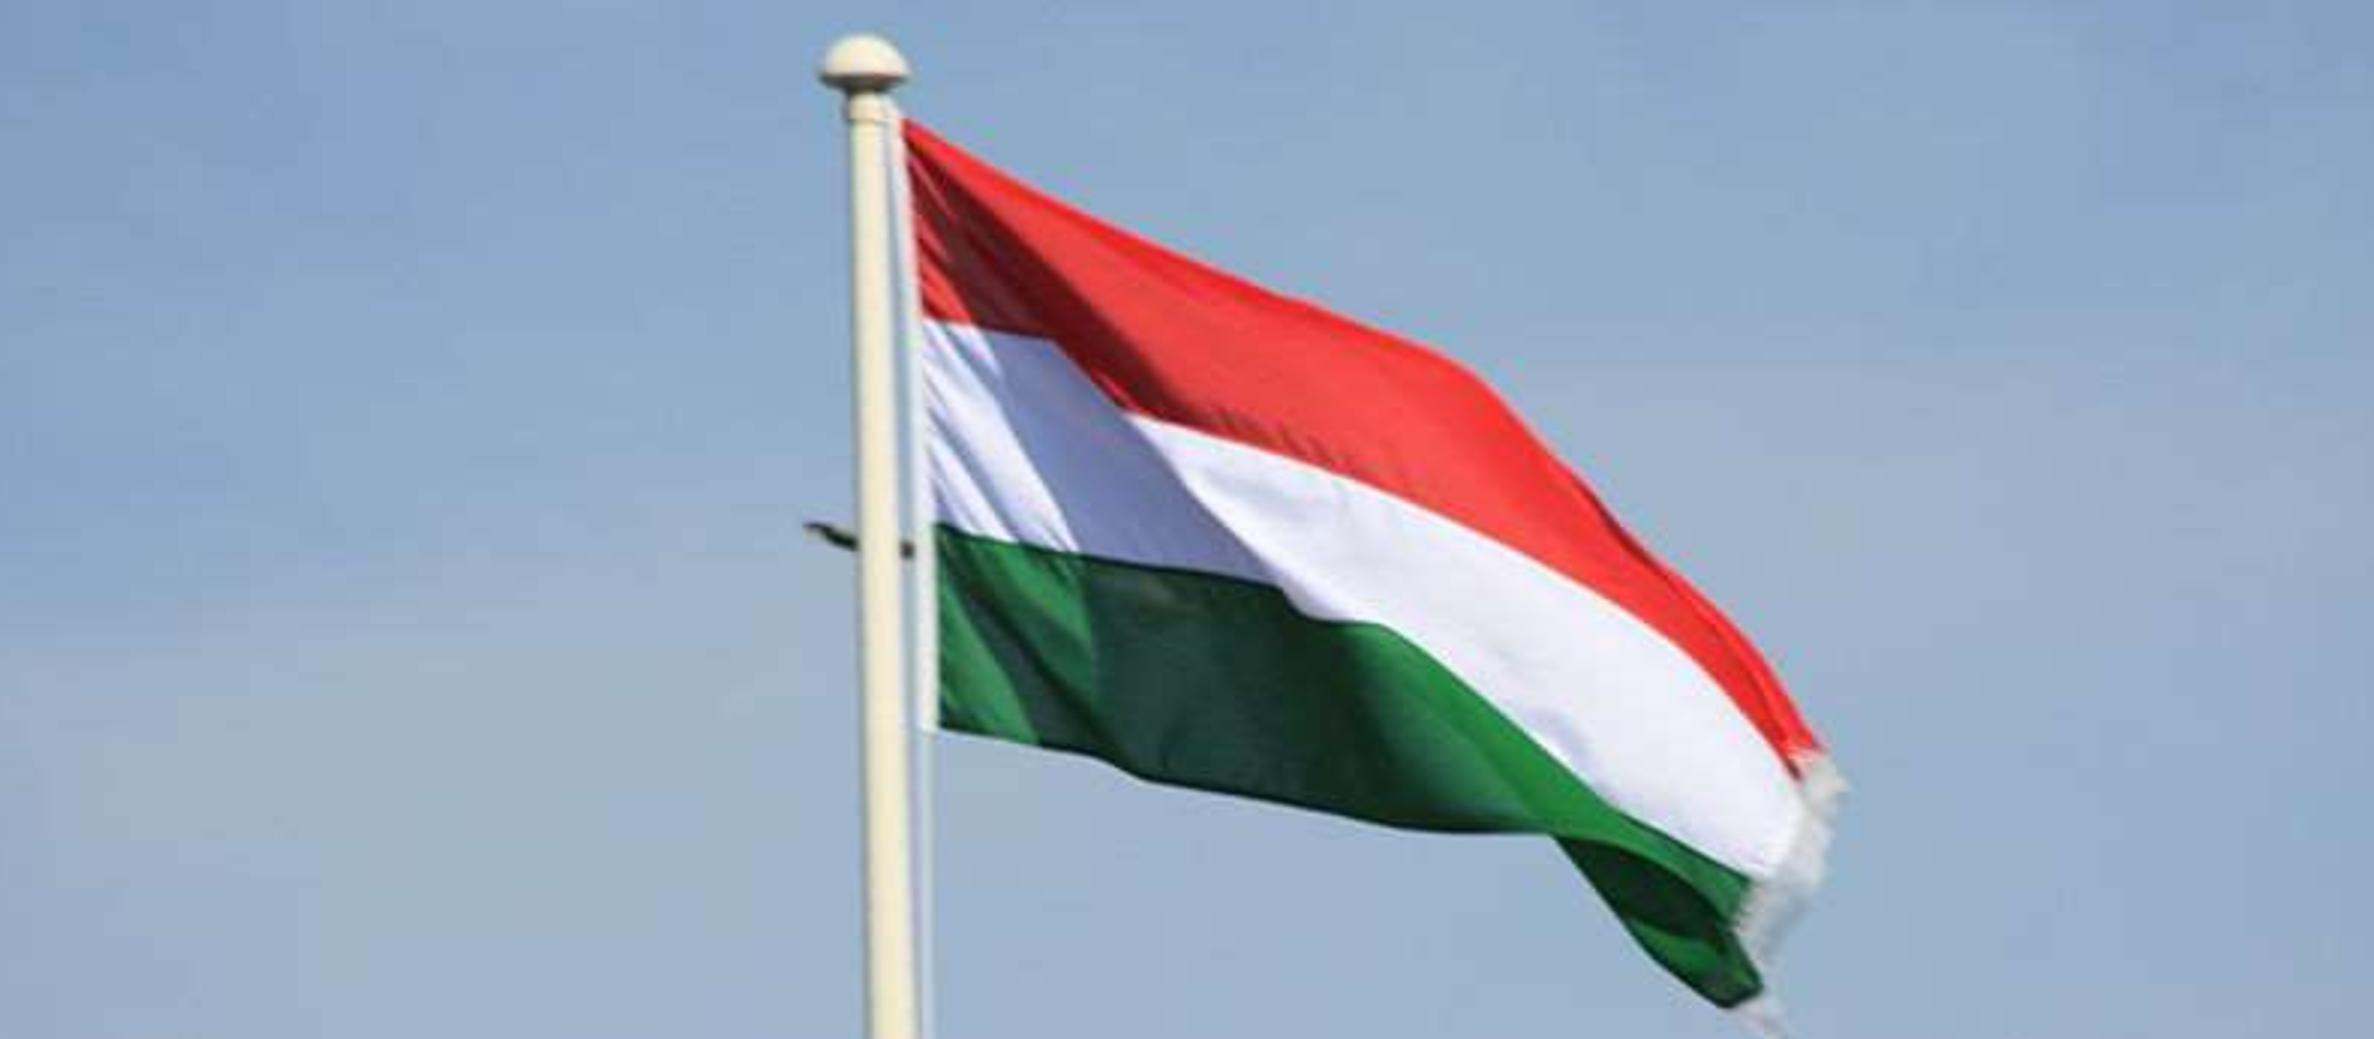 Hungary: Calls to stop planned statue of wartime Nazi supporter